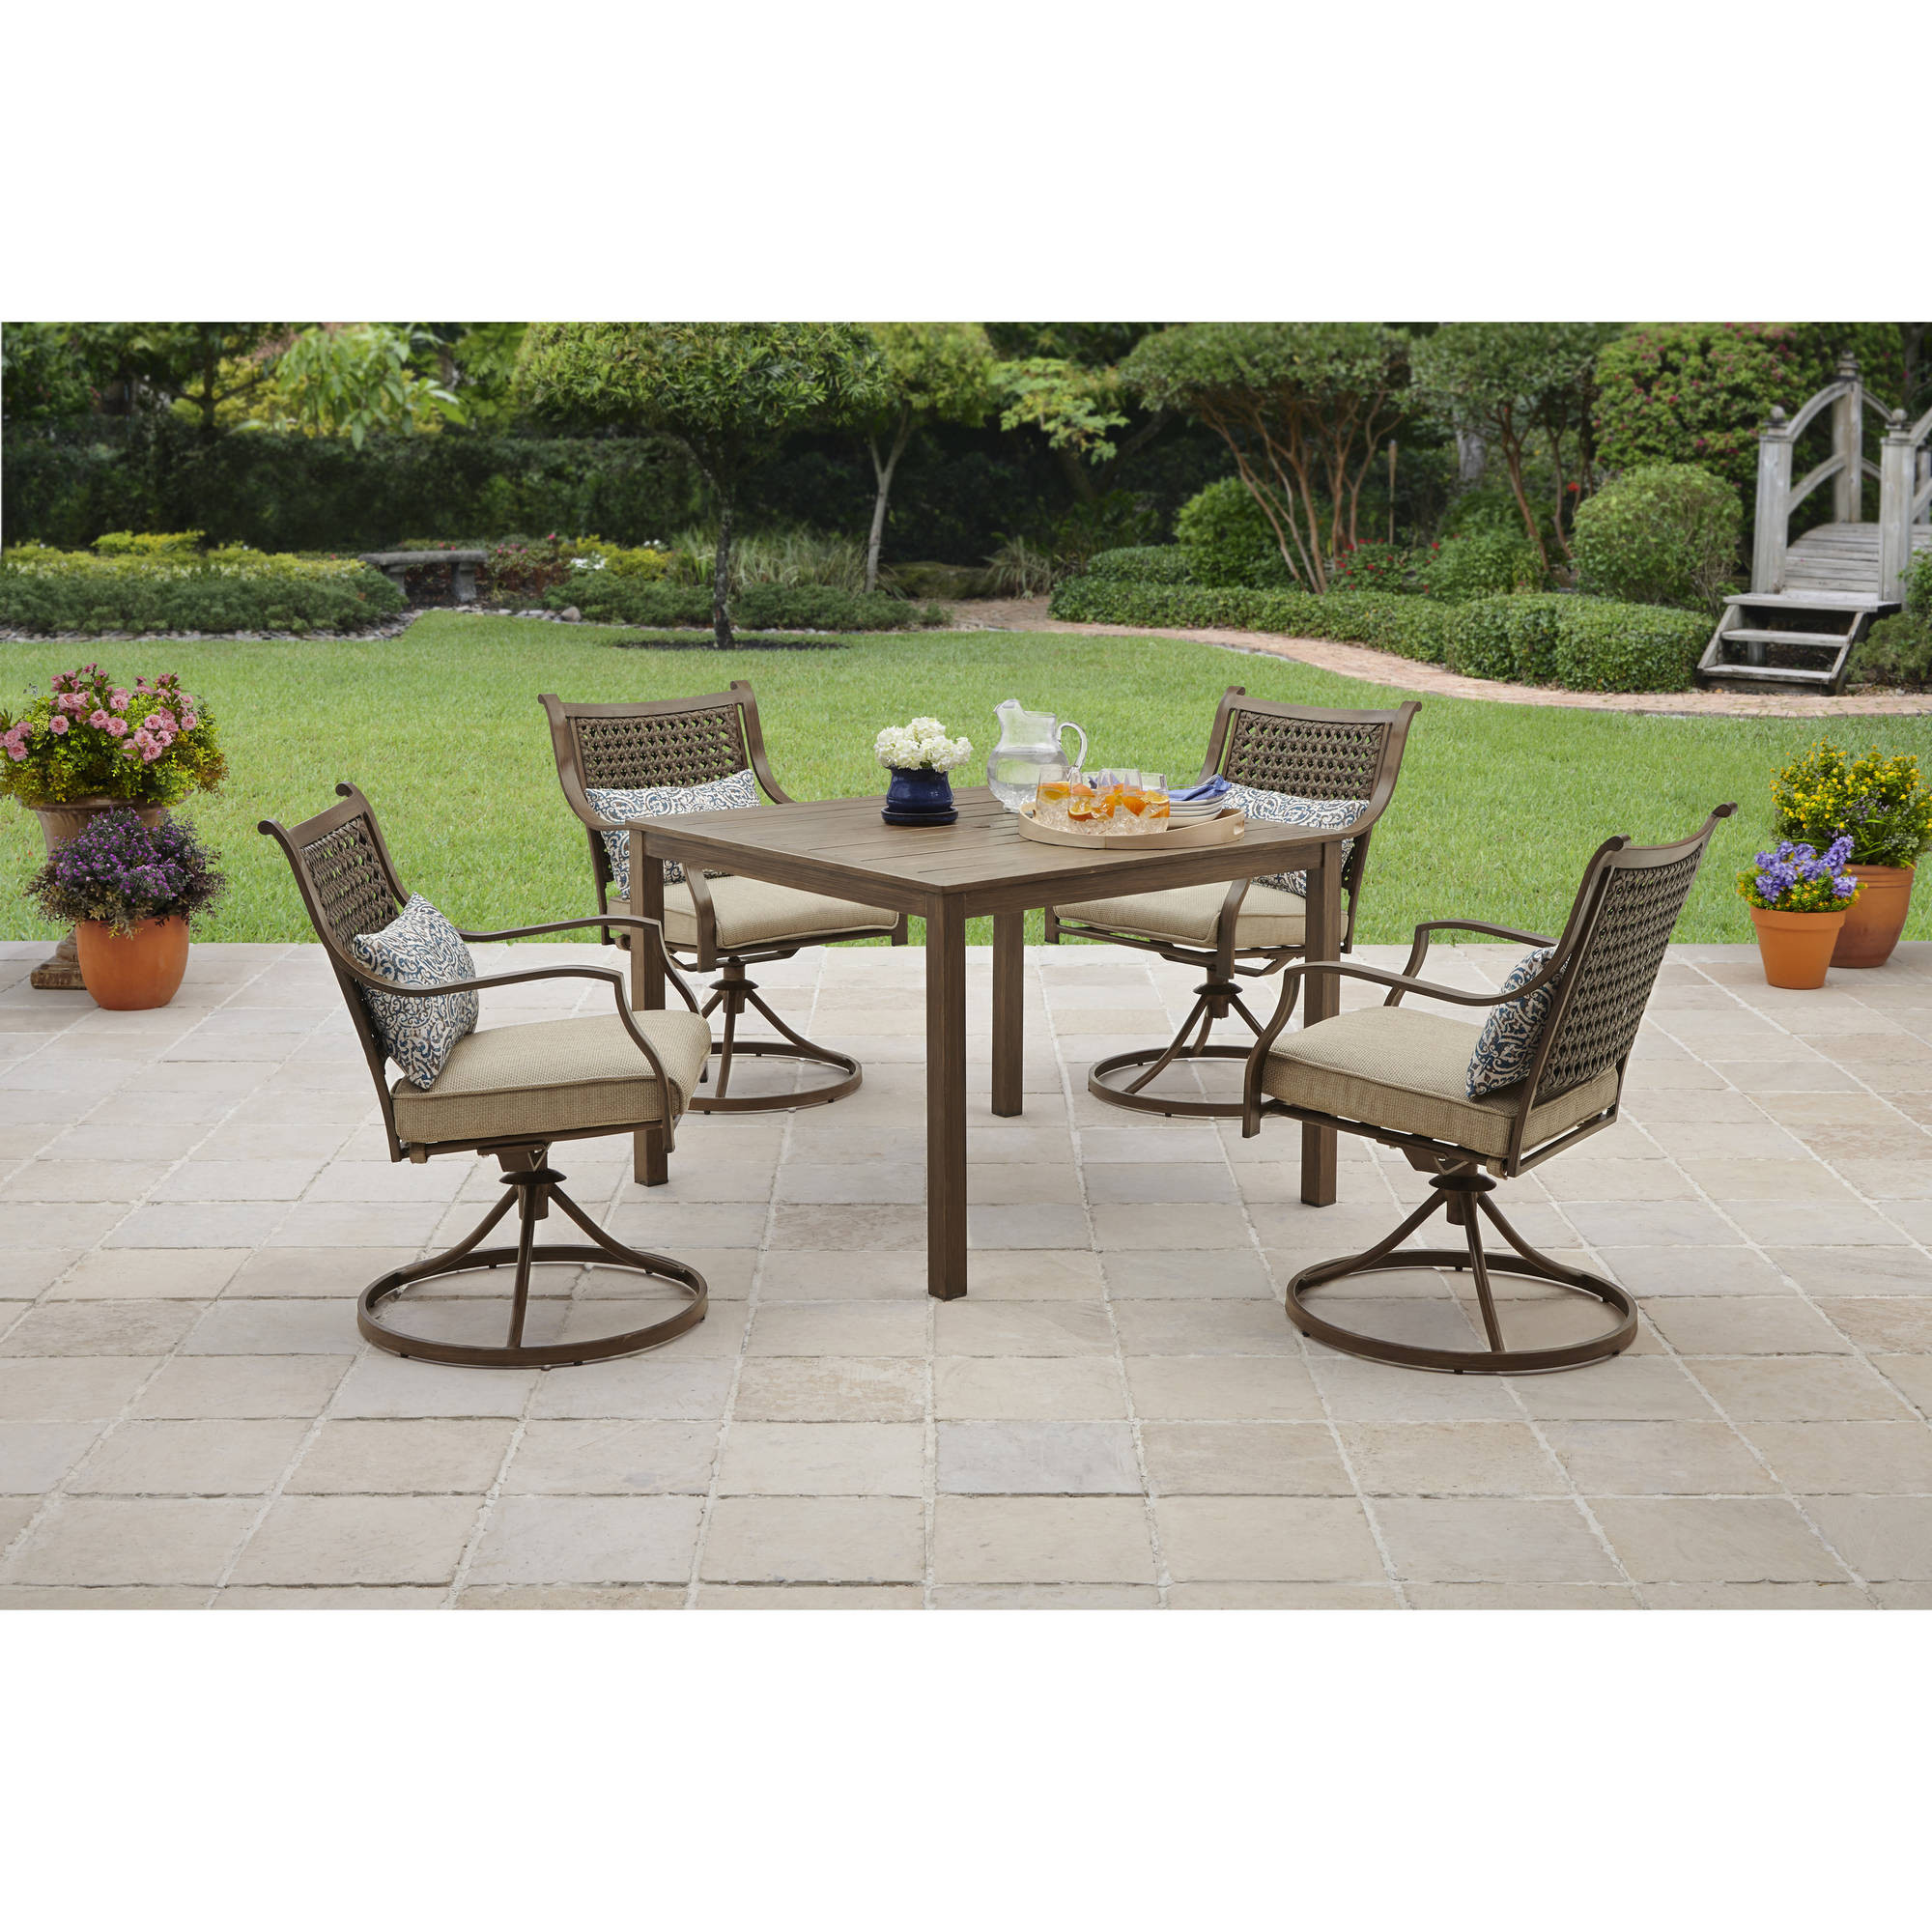 Best ideas about Walmart Patio Furniture . Save or Pin Wrought Iron Patio Furniture Walmart Now.